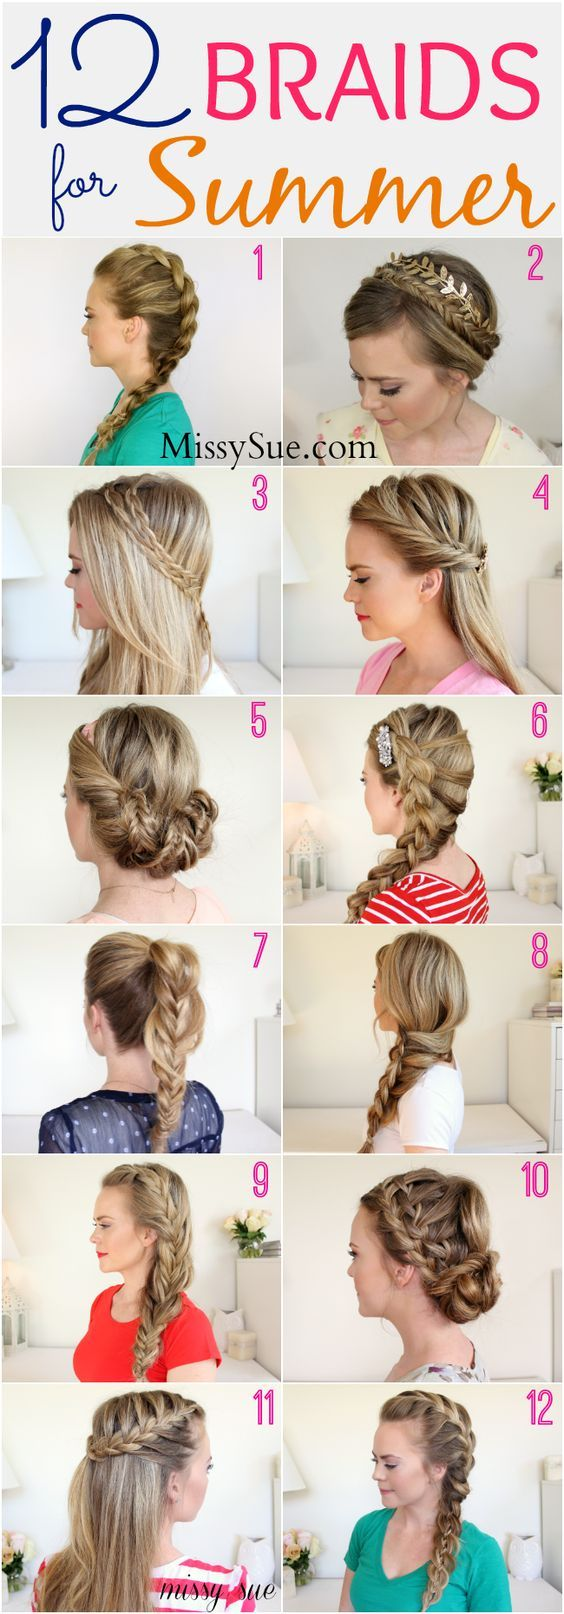 12 braids for summer -- beat the heat and look cute with these